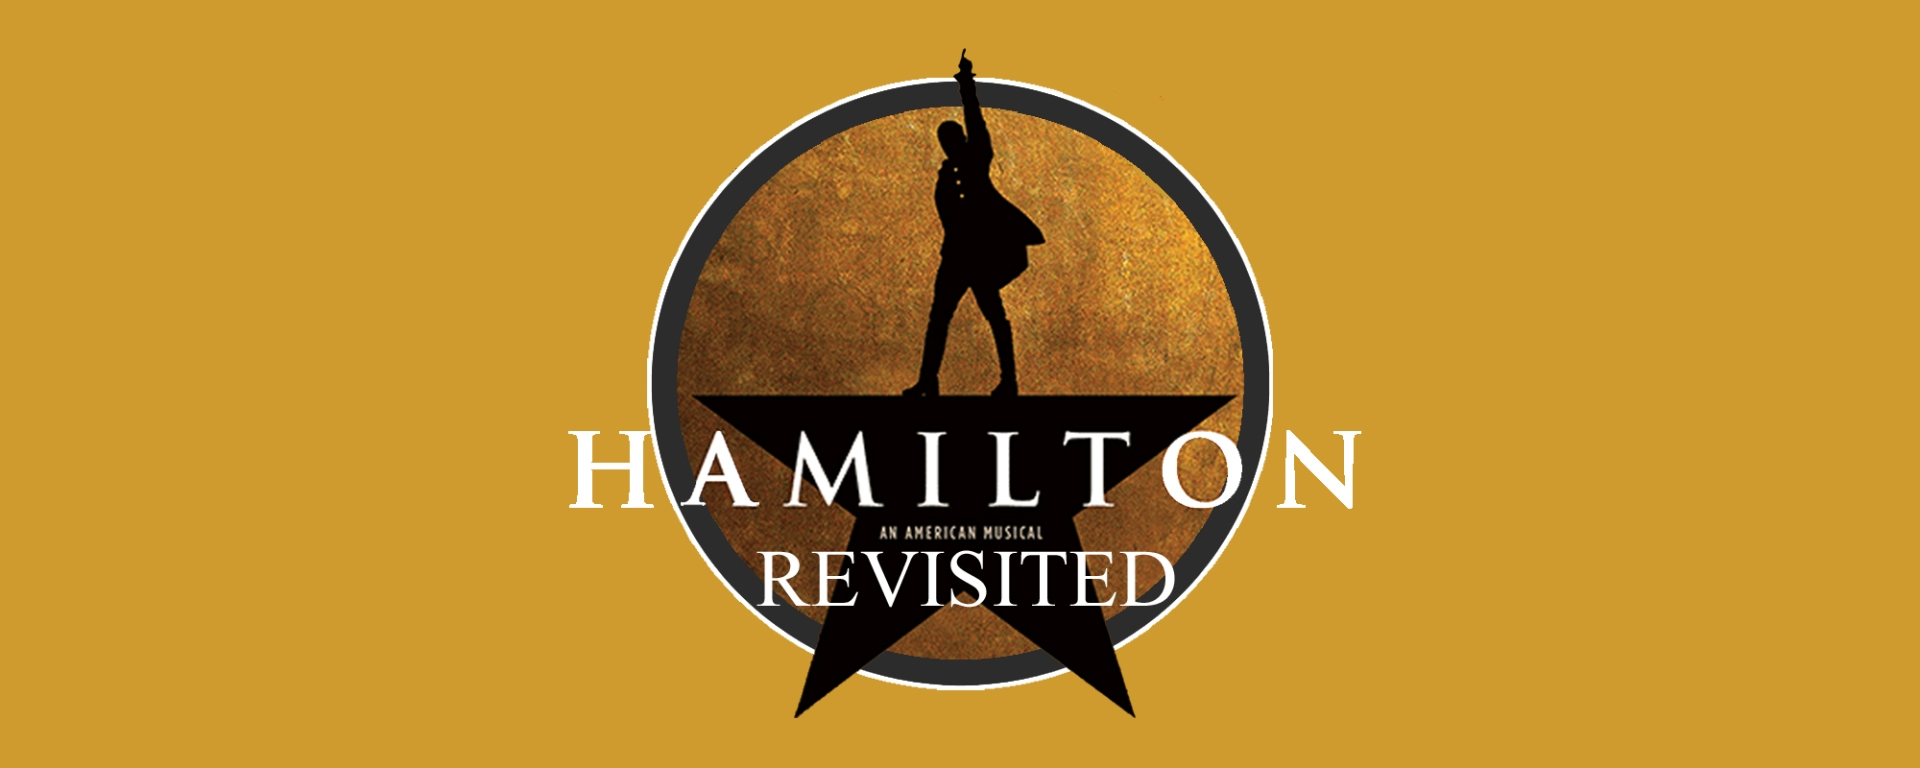 Hamilton Revisited Review